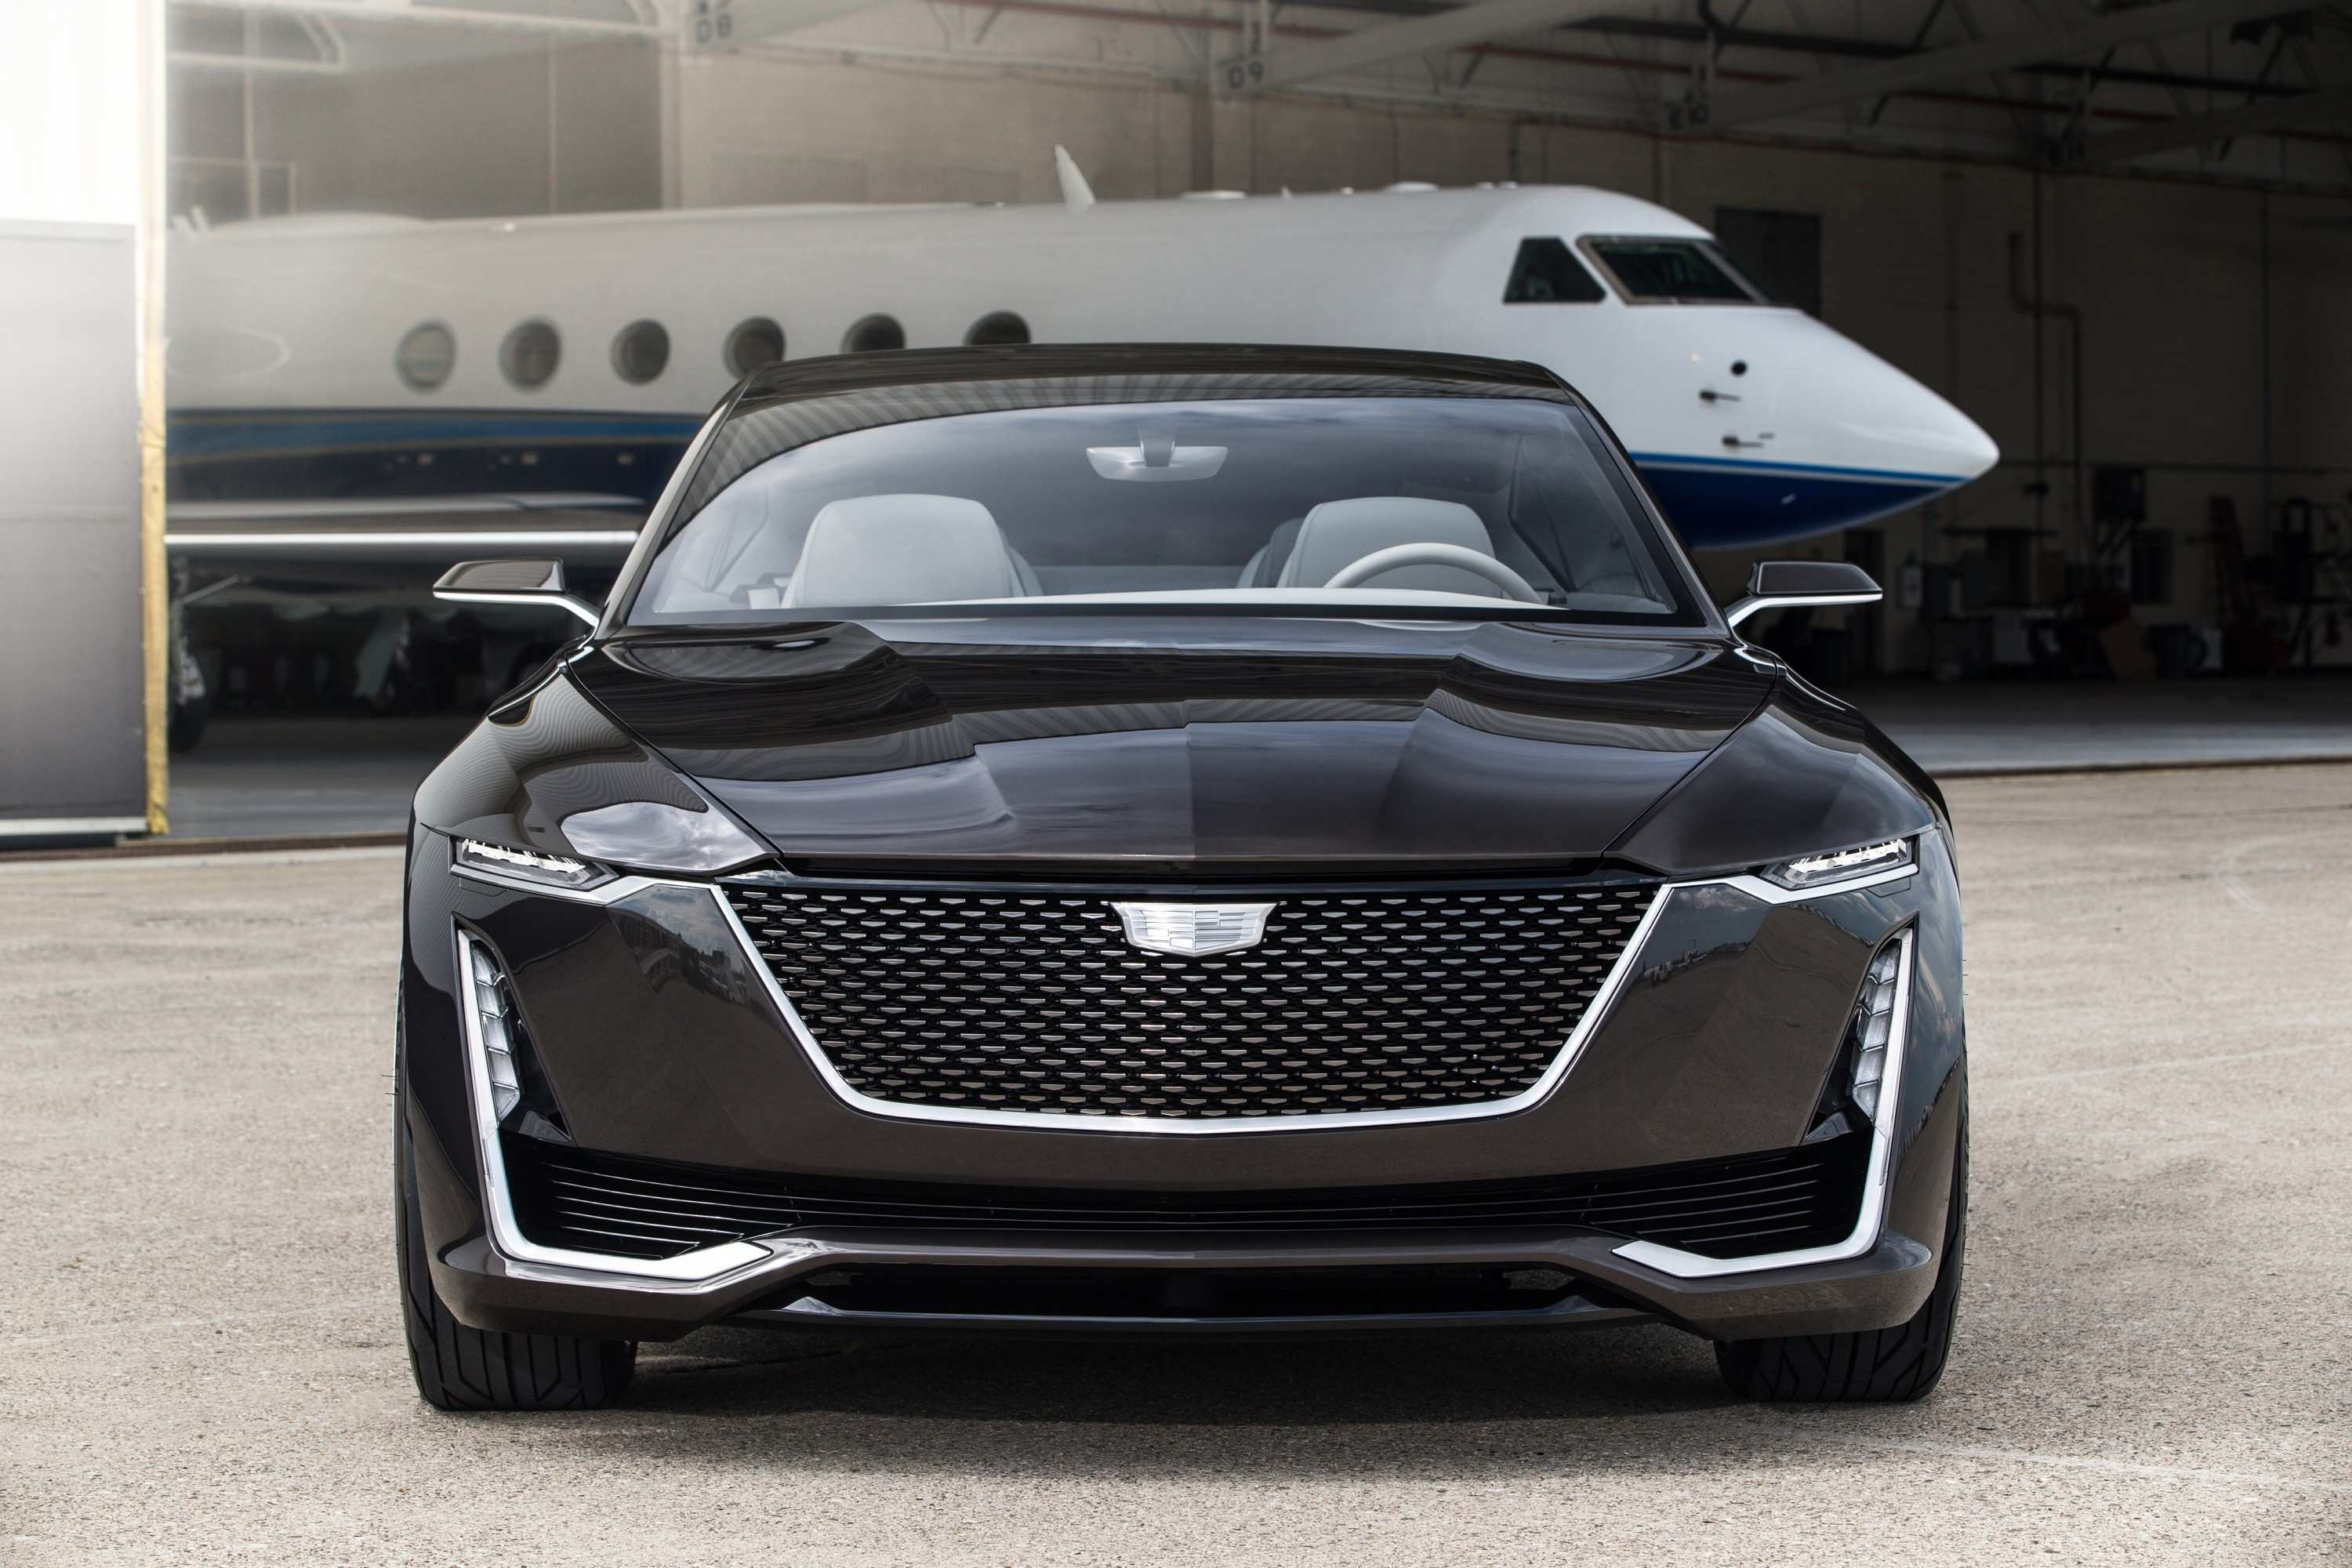 75 Best Review Cadillac Ats Coupe 2020 New Concept for Cadillac Ats Coupe 2020